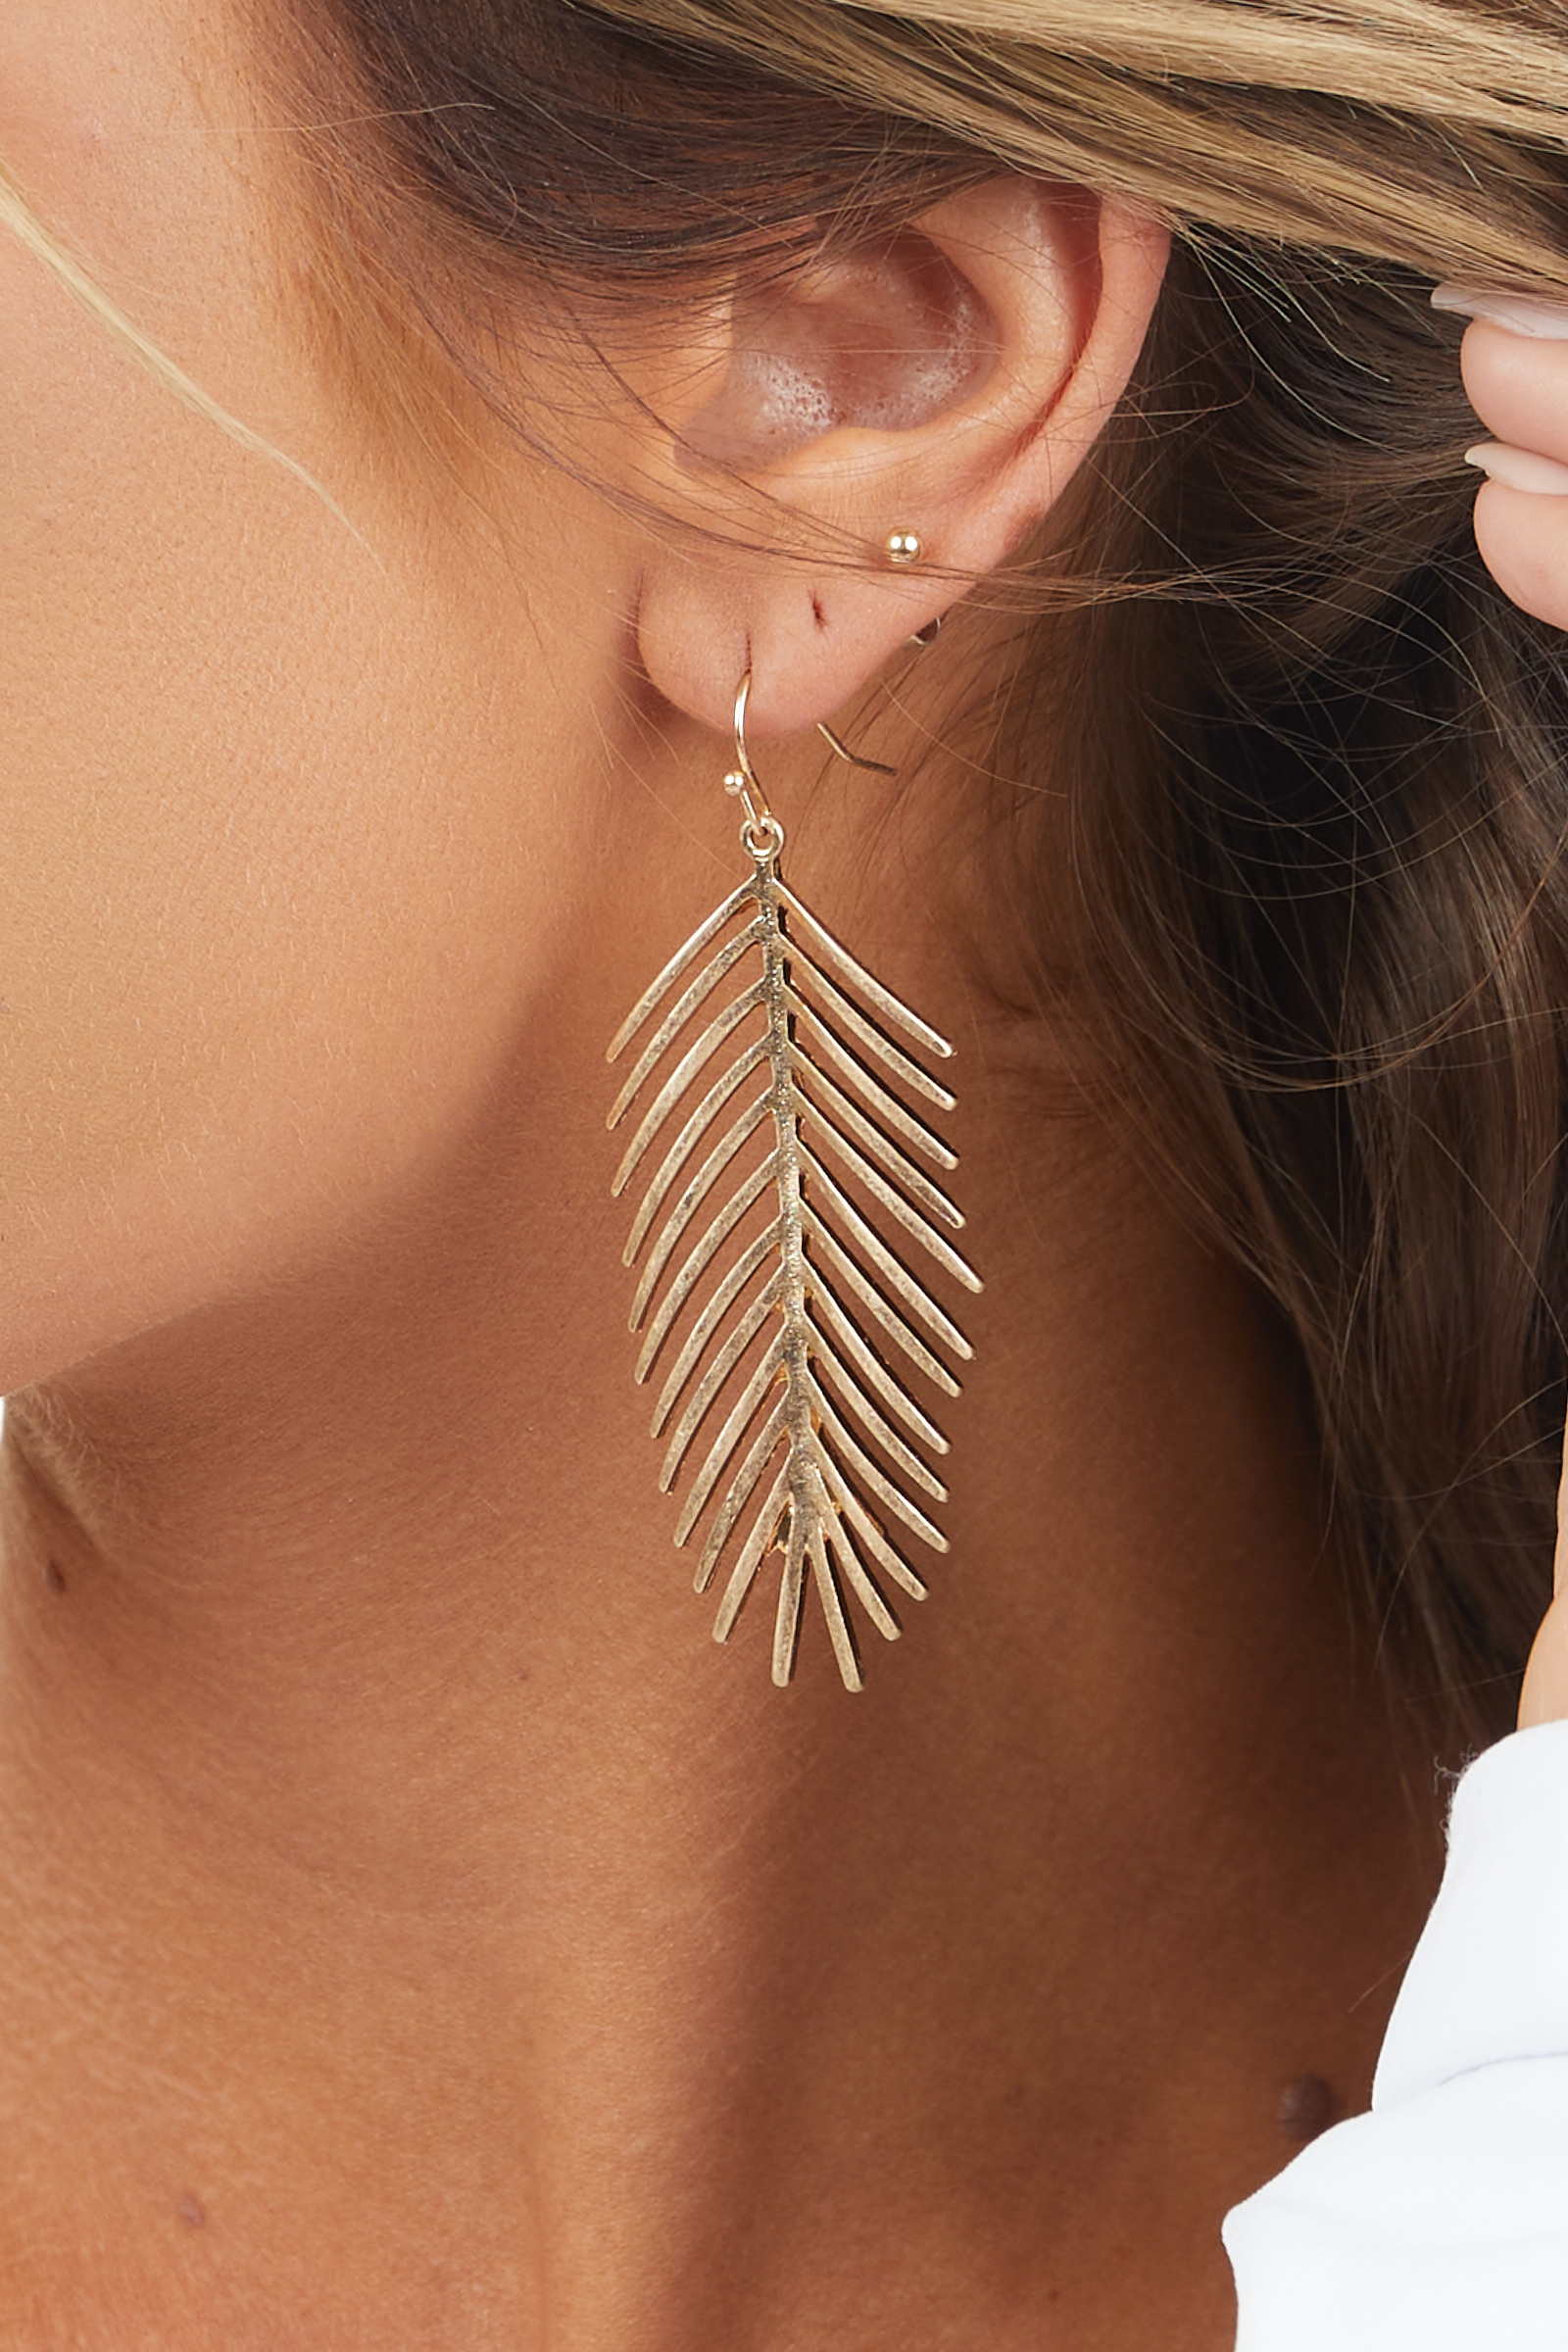 Gold Dangle Earrings with Palm Leaf Pendants